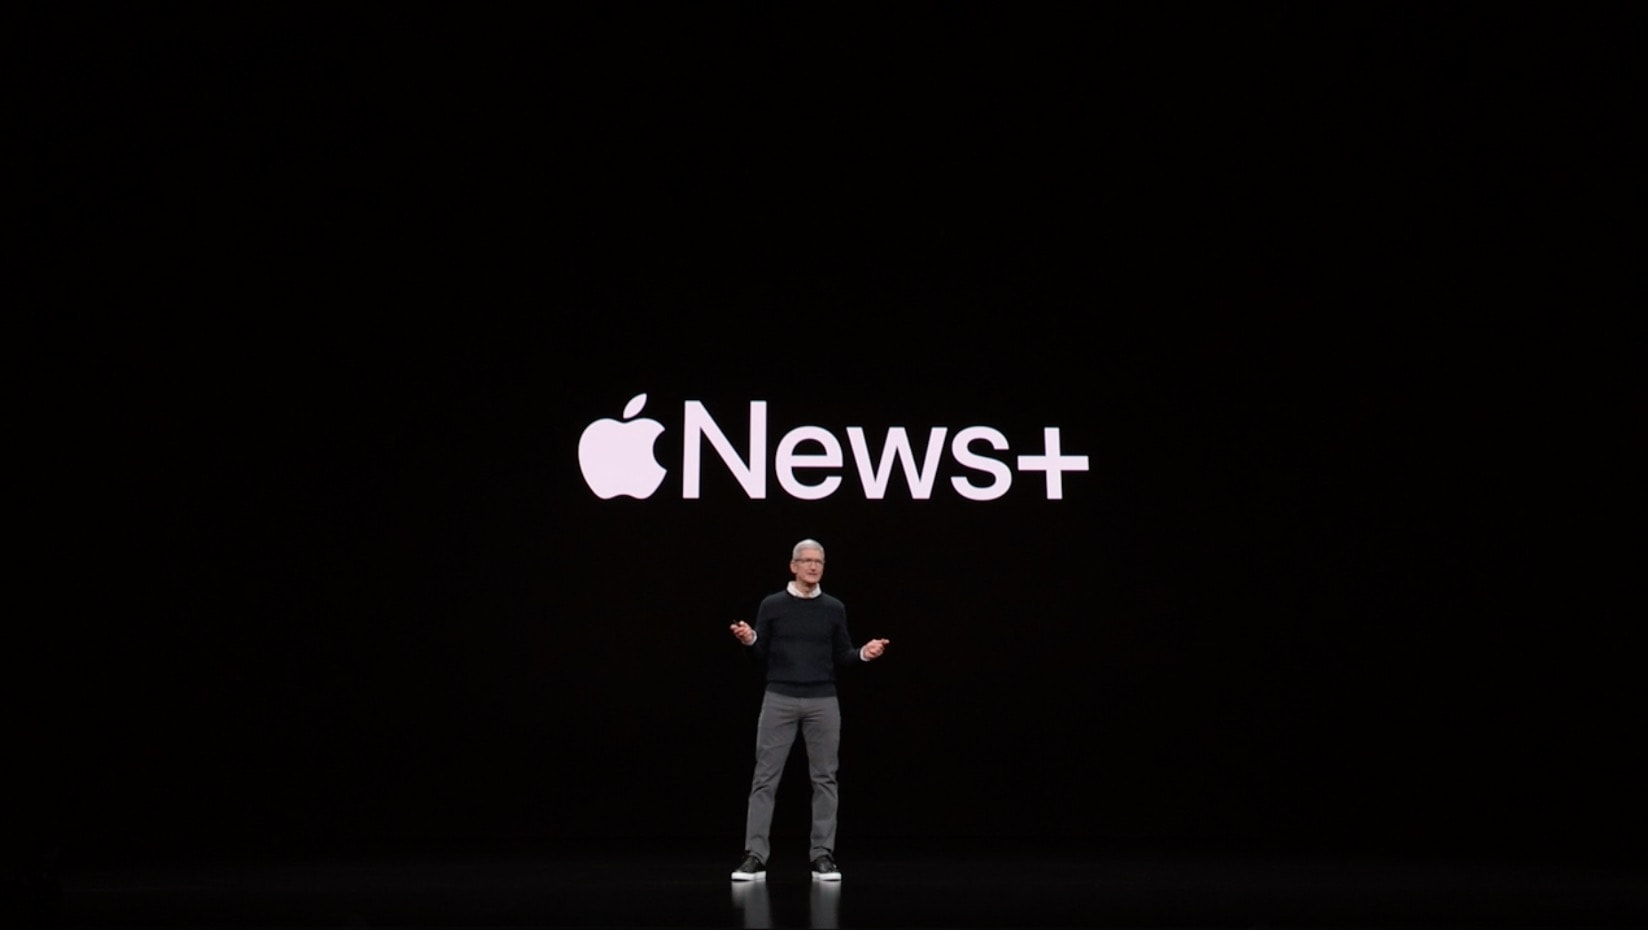 Some publishers report that Apple News+ isn't a 'huge boon' for business